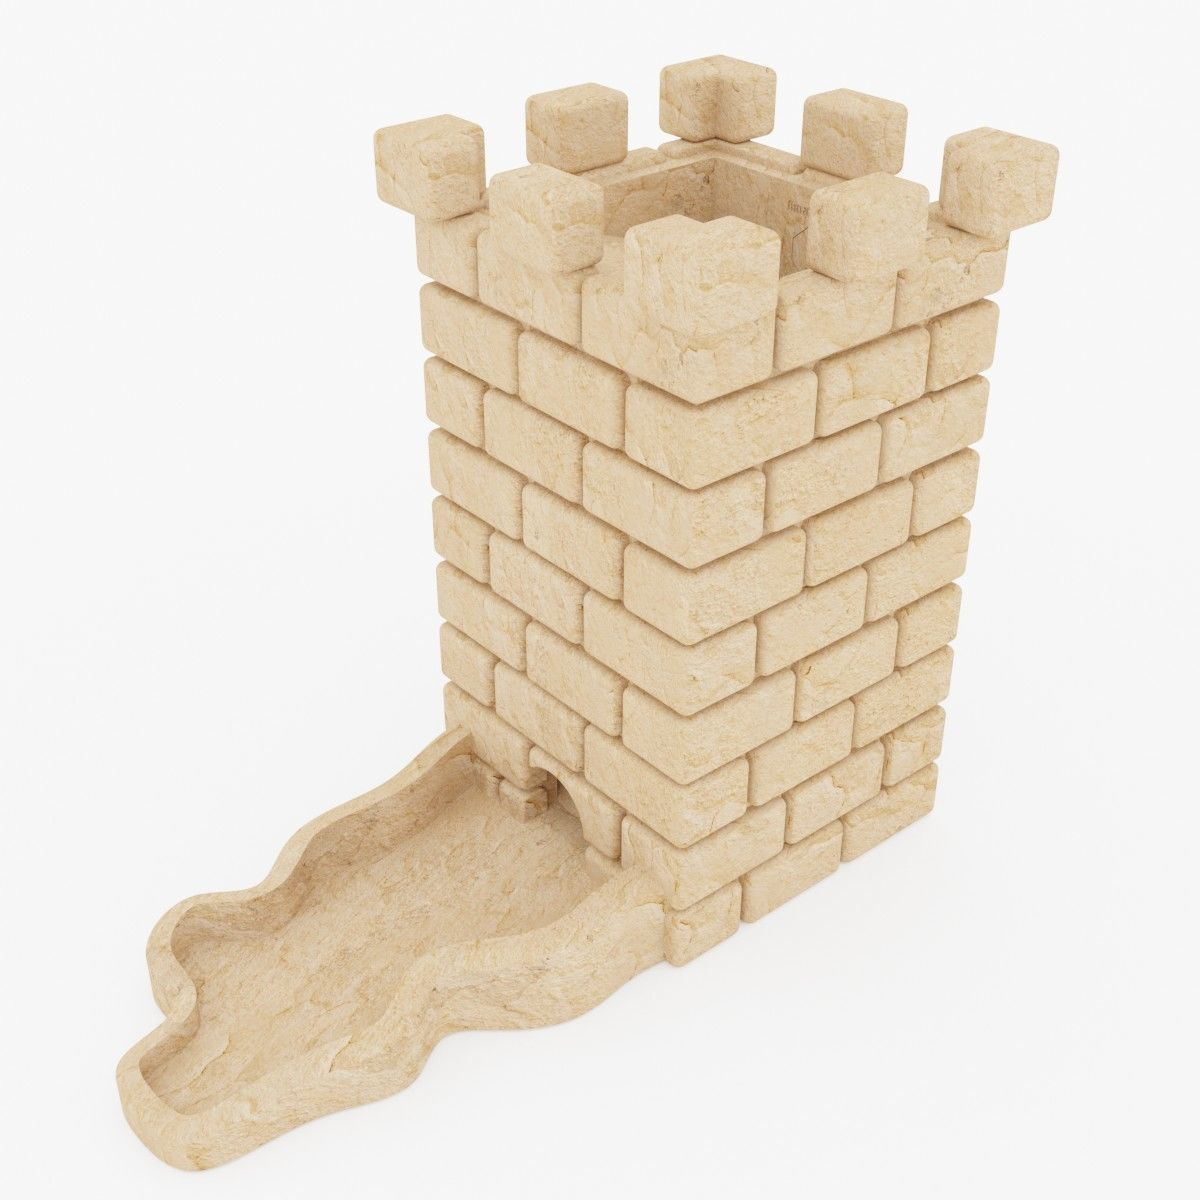 Dice Tower I